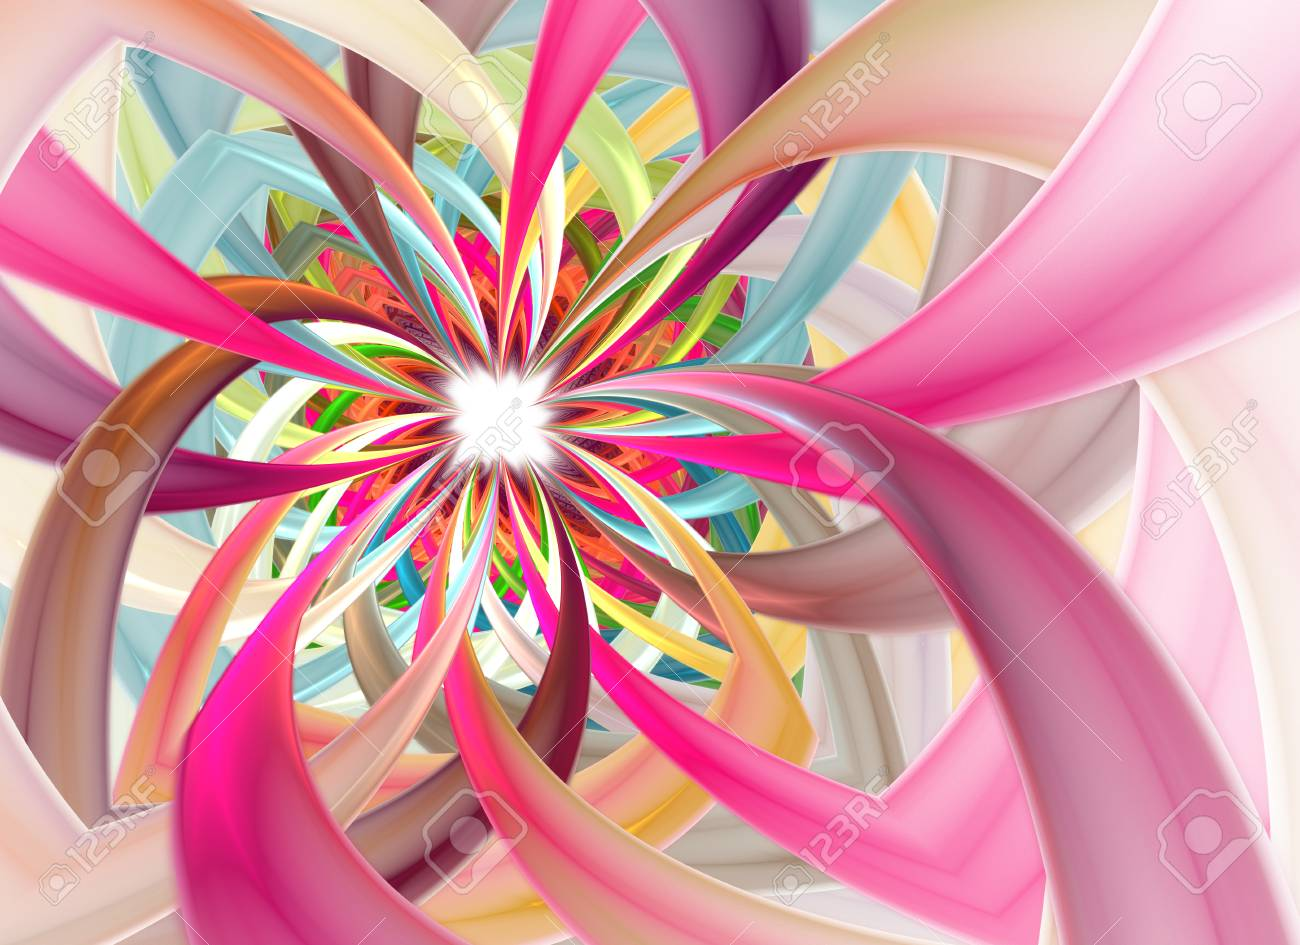 Spiral Petal Fireworks Computer Generated Image Abstract Fractal Of Beautiful Flower Of Ribbons Background For Wallpaper Album Poster Booklet